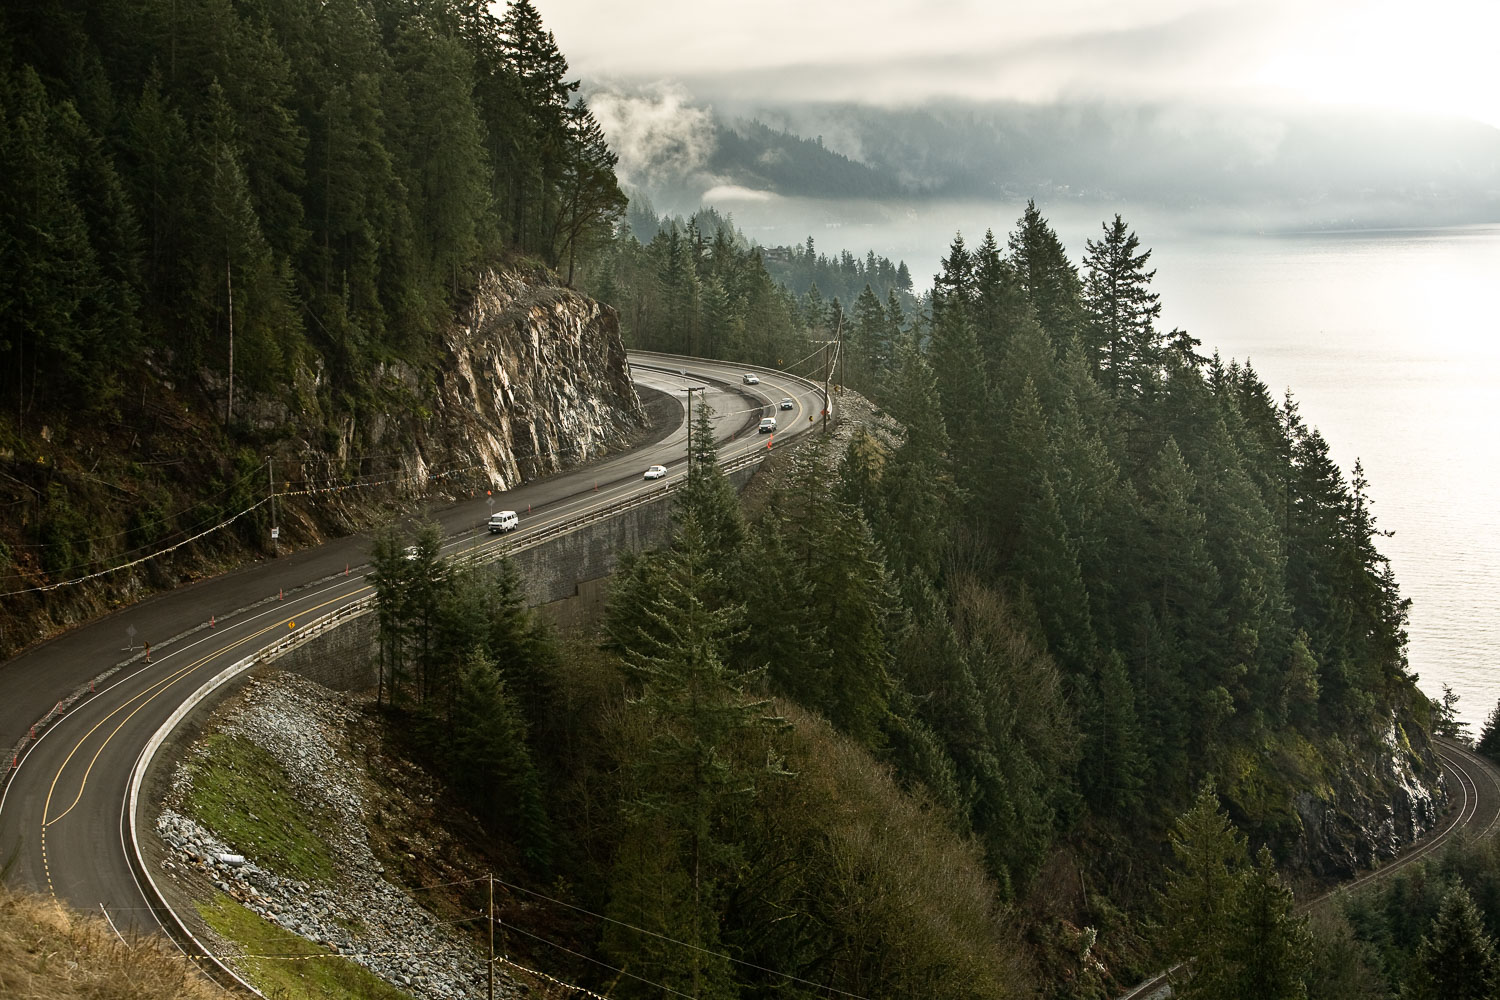 Photograph of a mountain highway